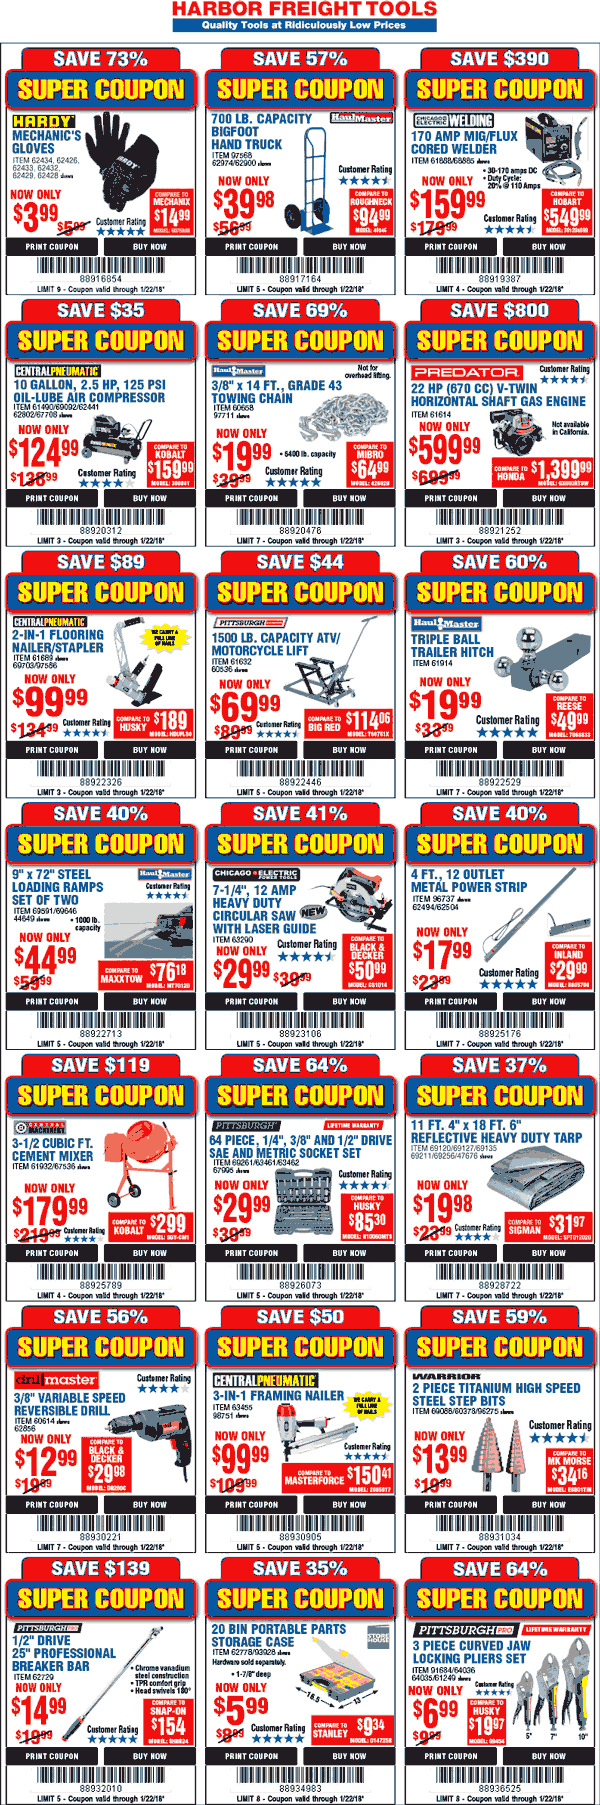 HarborFreightTools.com Promo Coupon Various coupons for Harbor Freight Tools